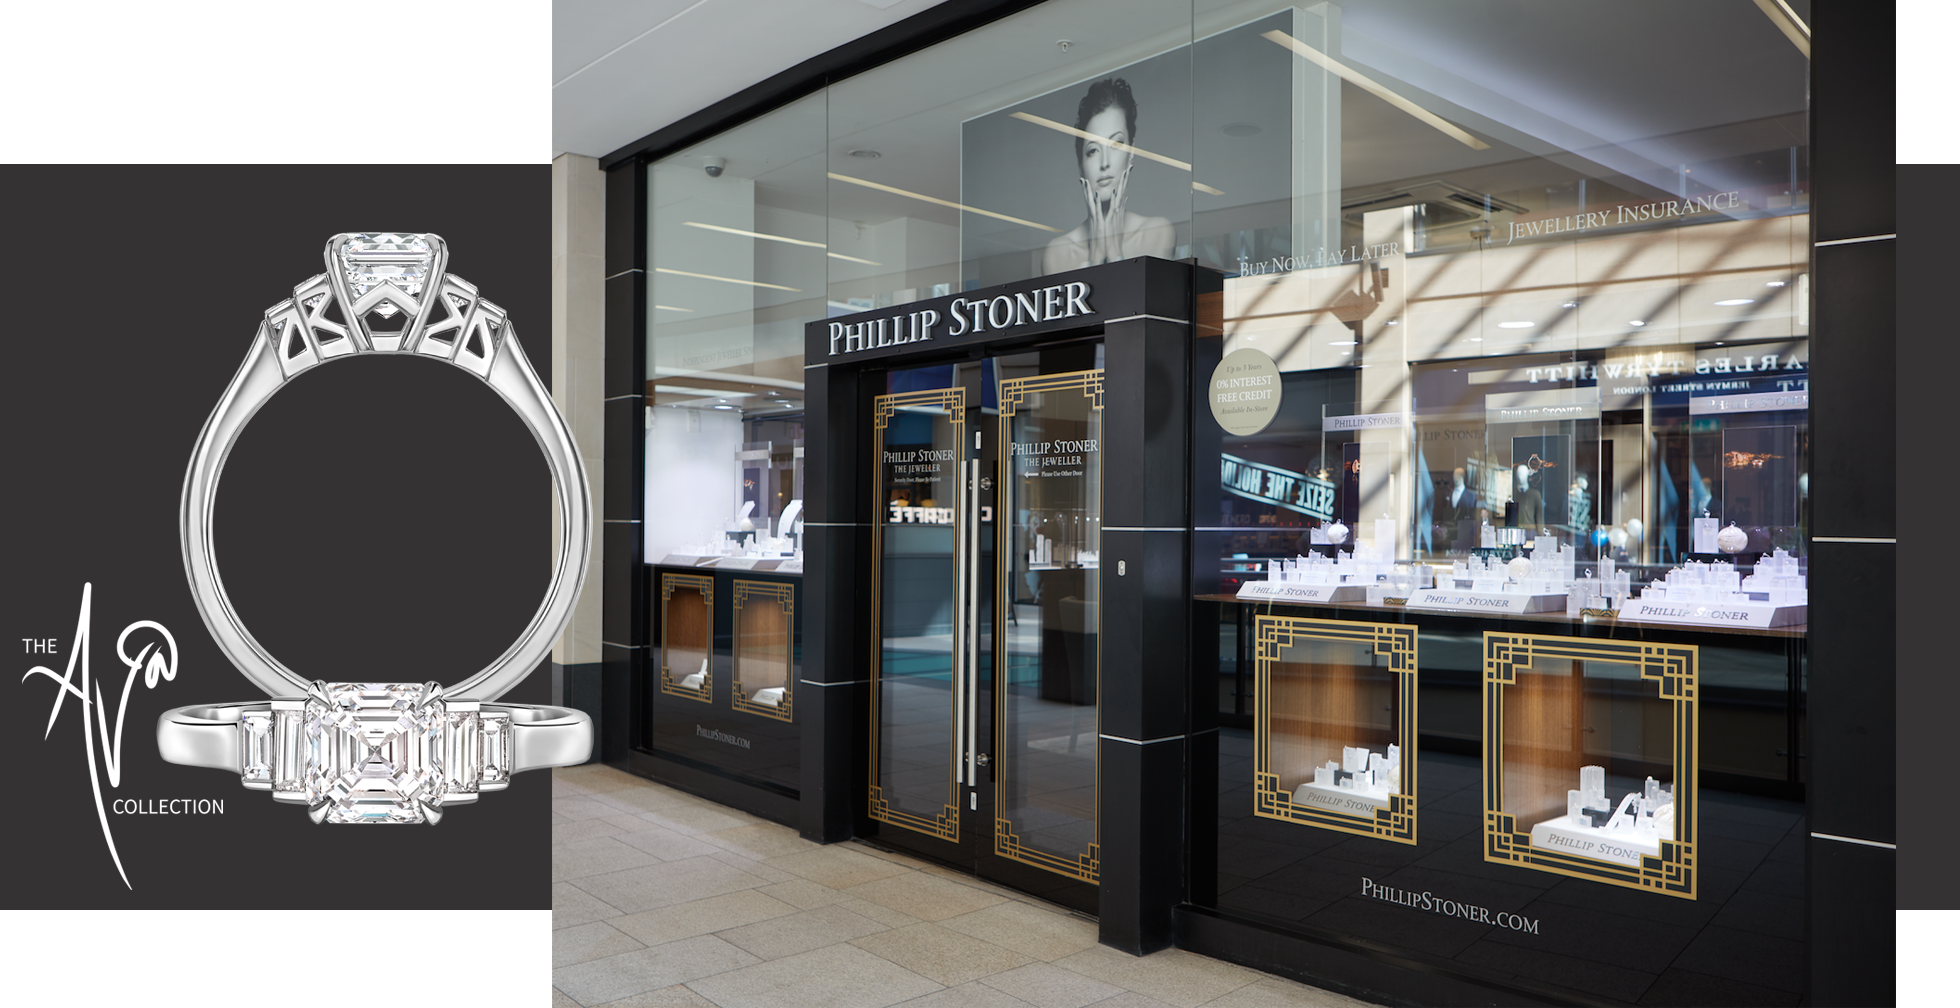 The Ava Collection, Exclusive to Phillip Stoner The Jeweller